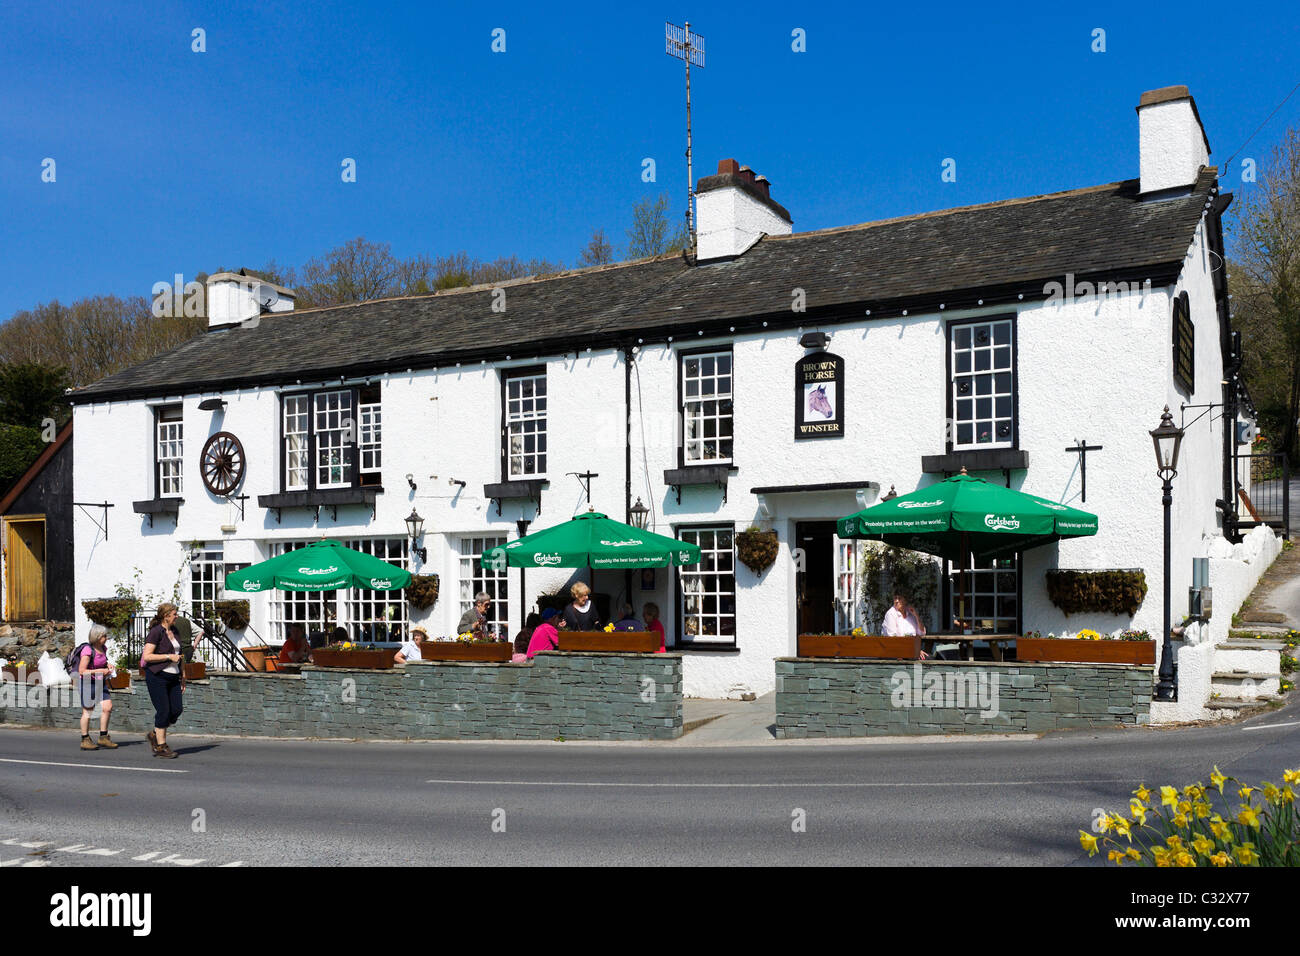 The Brown Horse traditional country pub, Winster, near Lake Windermere, Lake District National Park, Cumbria, UK - Stock Image